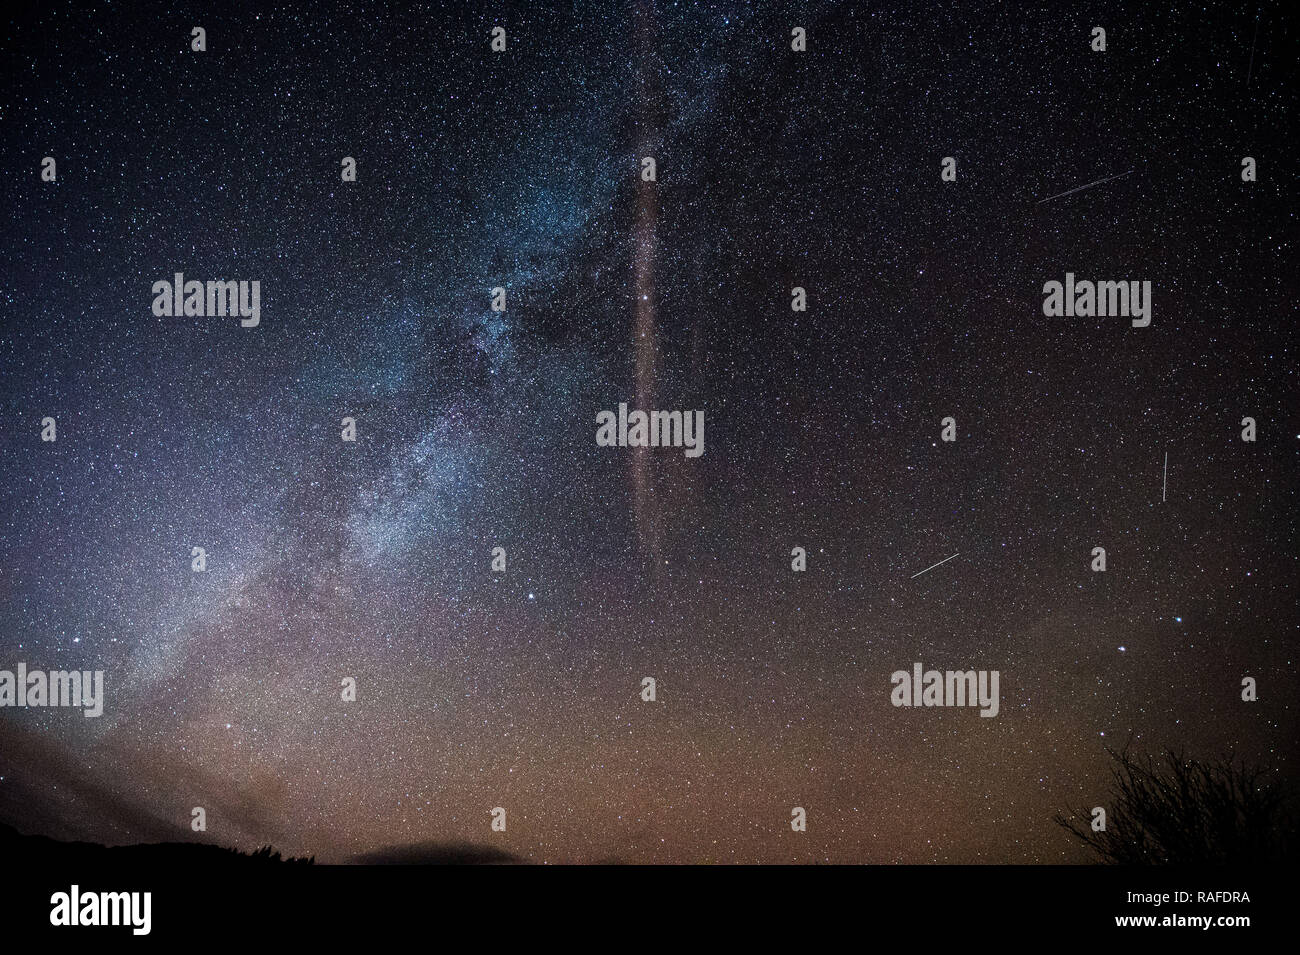 Milky Way, stars and night sky as seen from the outstanding beautiful area of The Trossachs in Scotland, Stirling, UK - 1st January 2019. - Stock Image